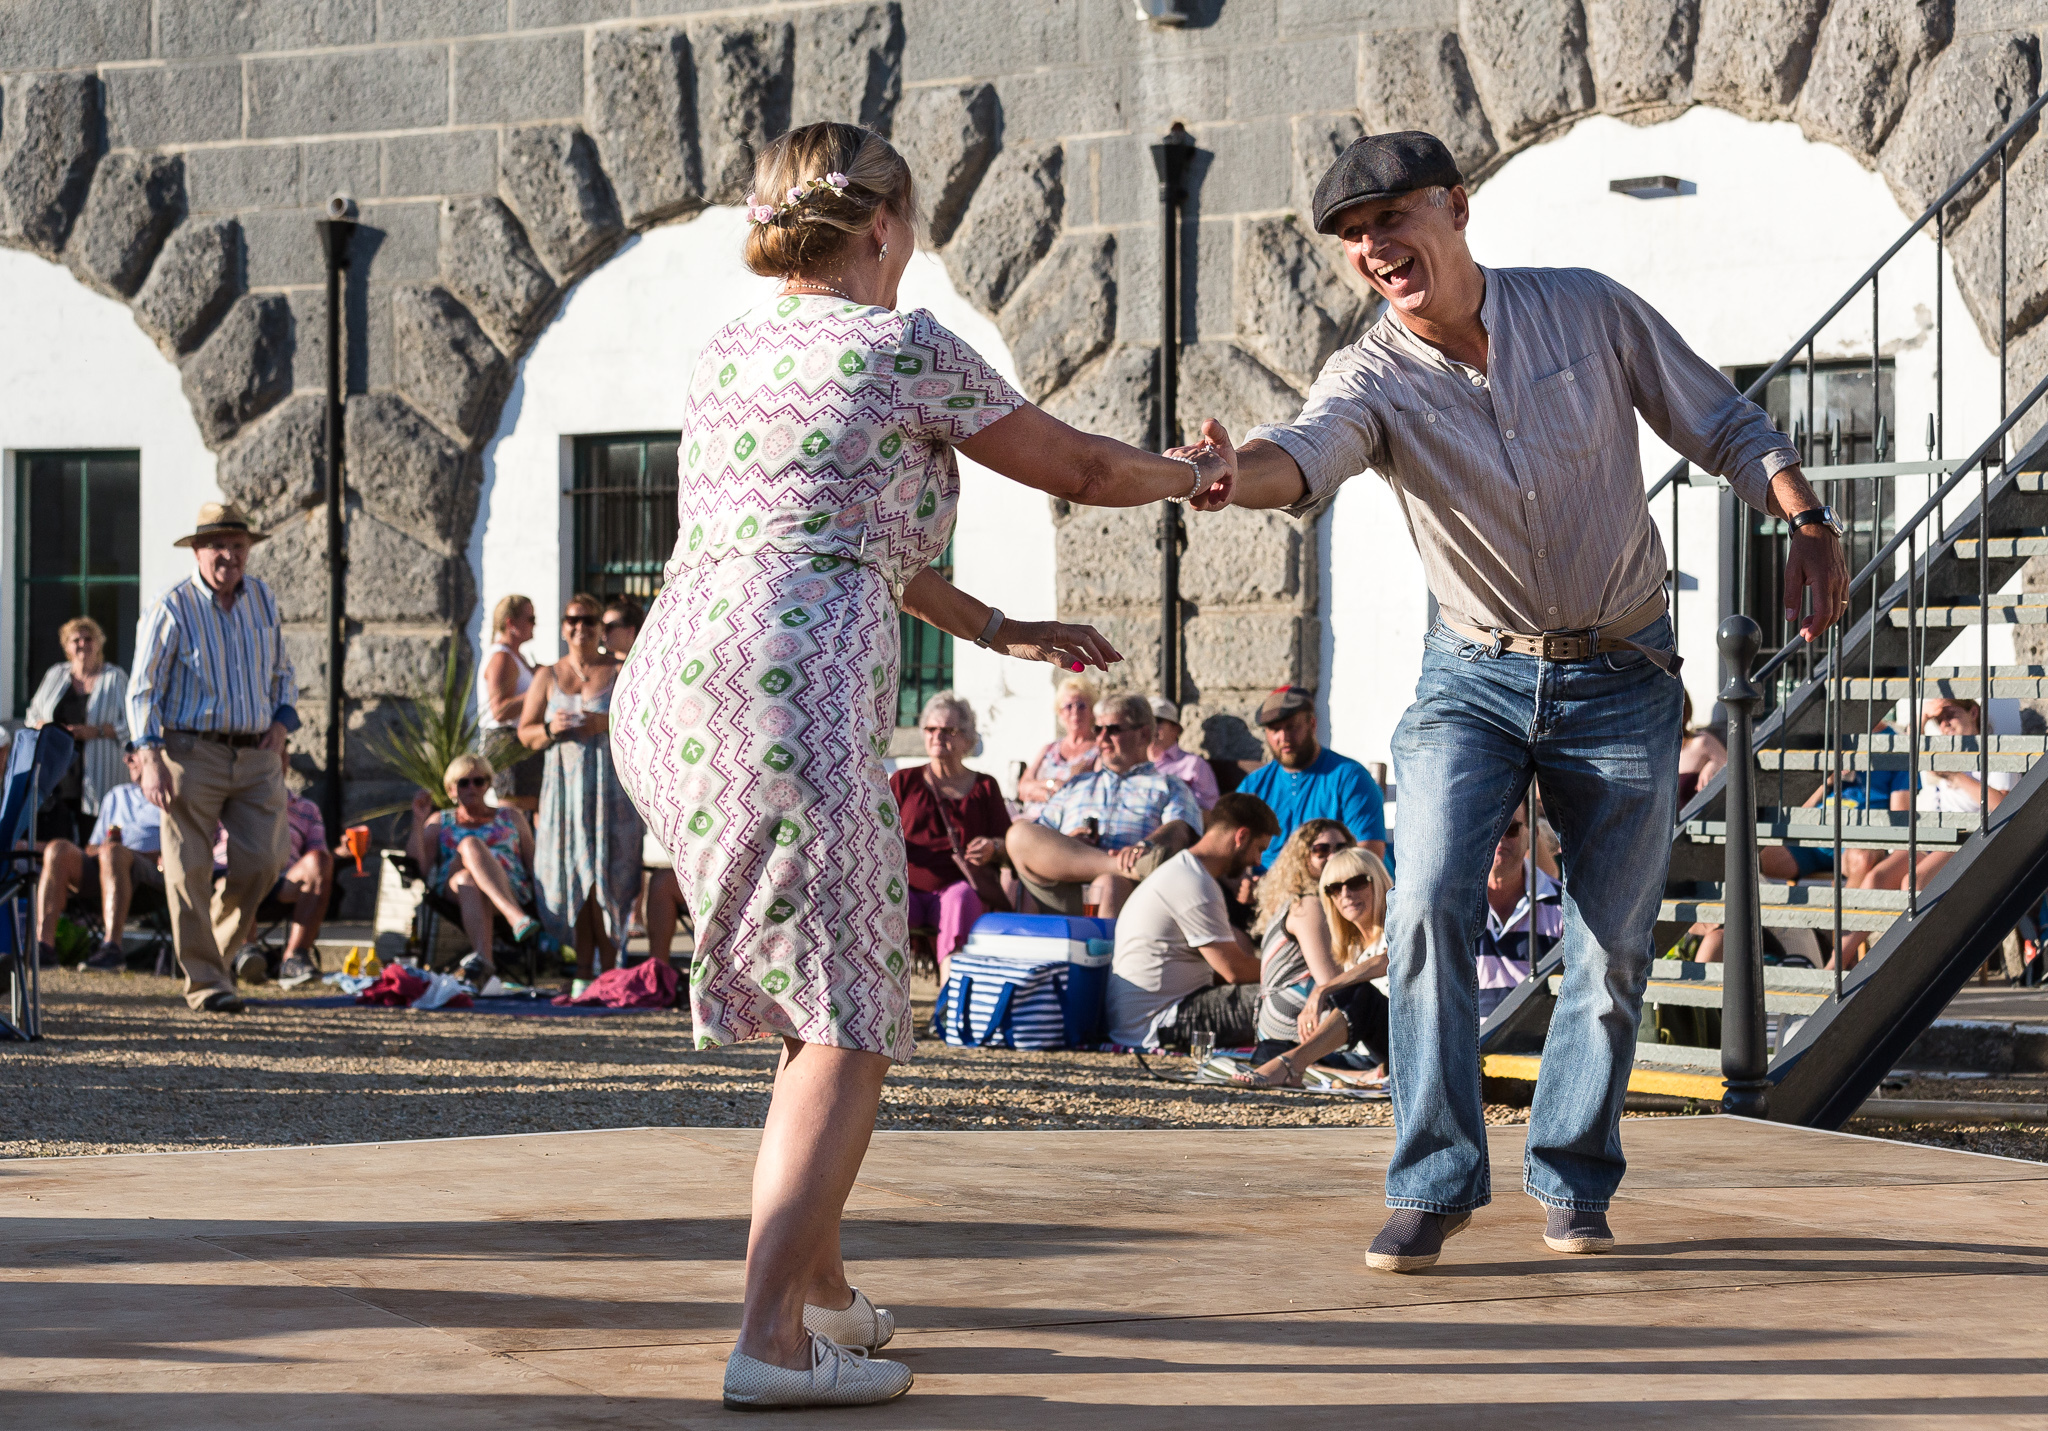 Immerse yourself in the 1940s at nostalgic weekend